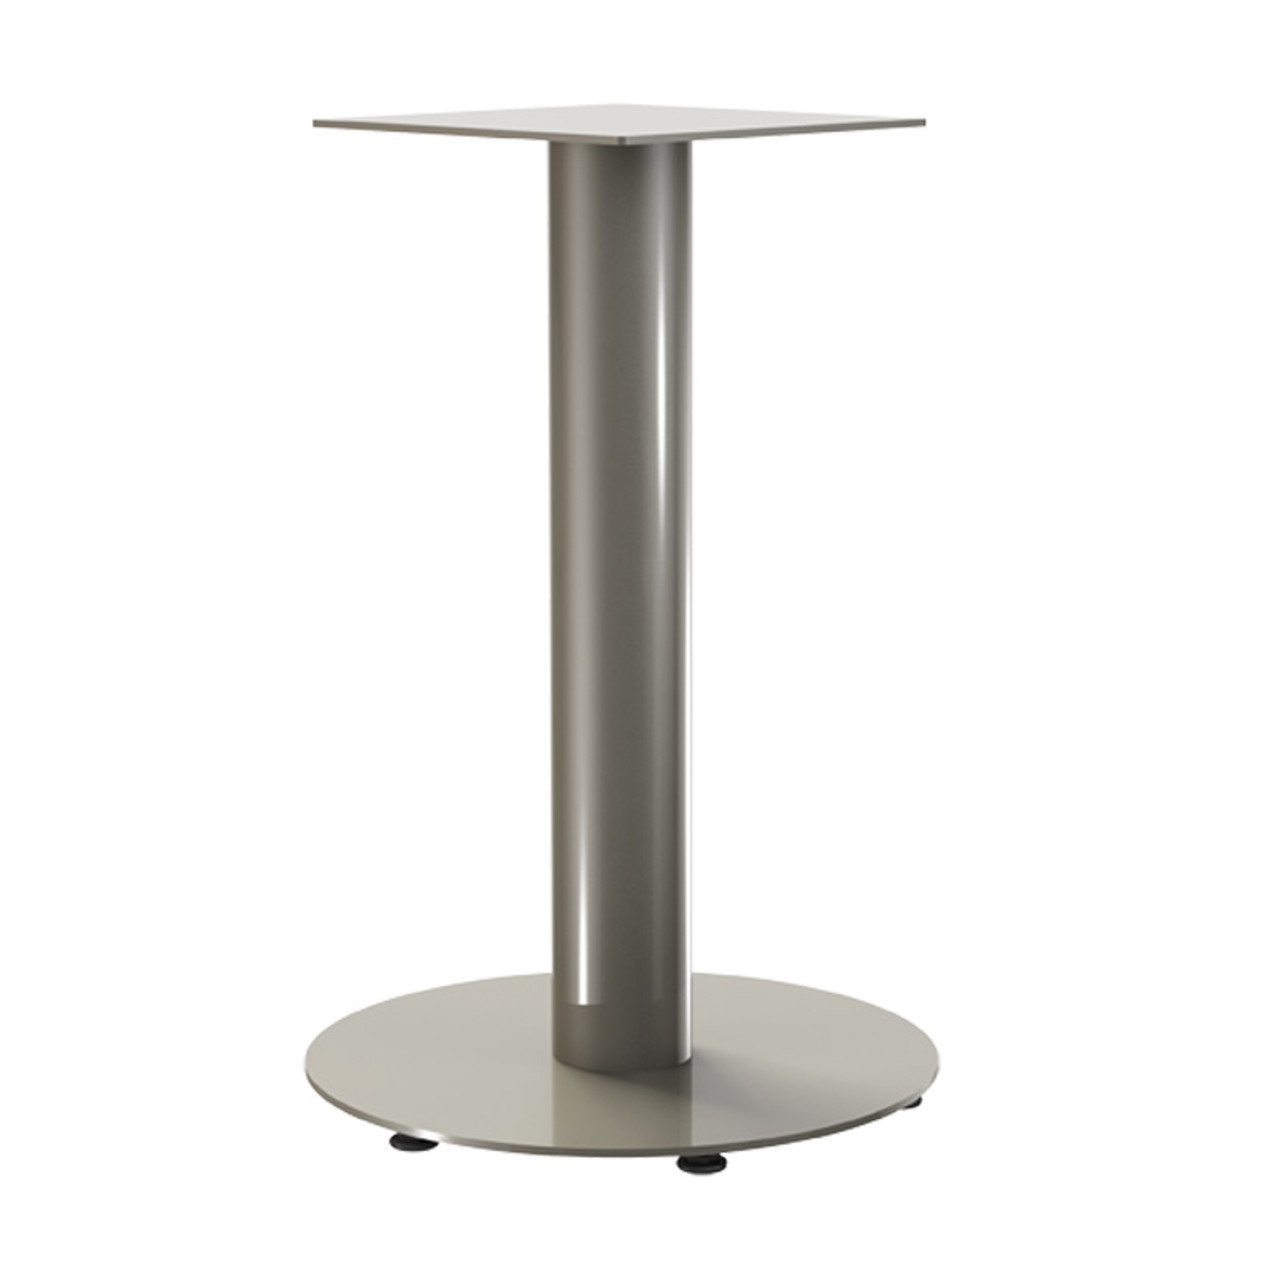 "Round Pedestal Base, 27-3/4"" Height, 23-3/4"" Base Diameter, 4"" diameter Column, with welded mounting plate and levelers - Replacementtablelegs.com"